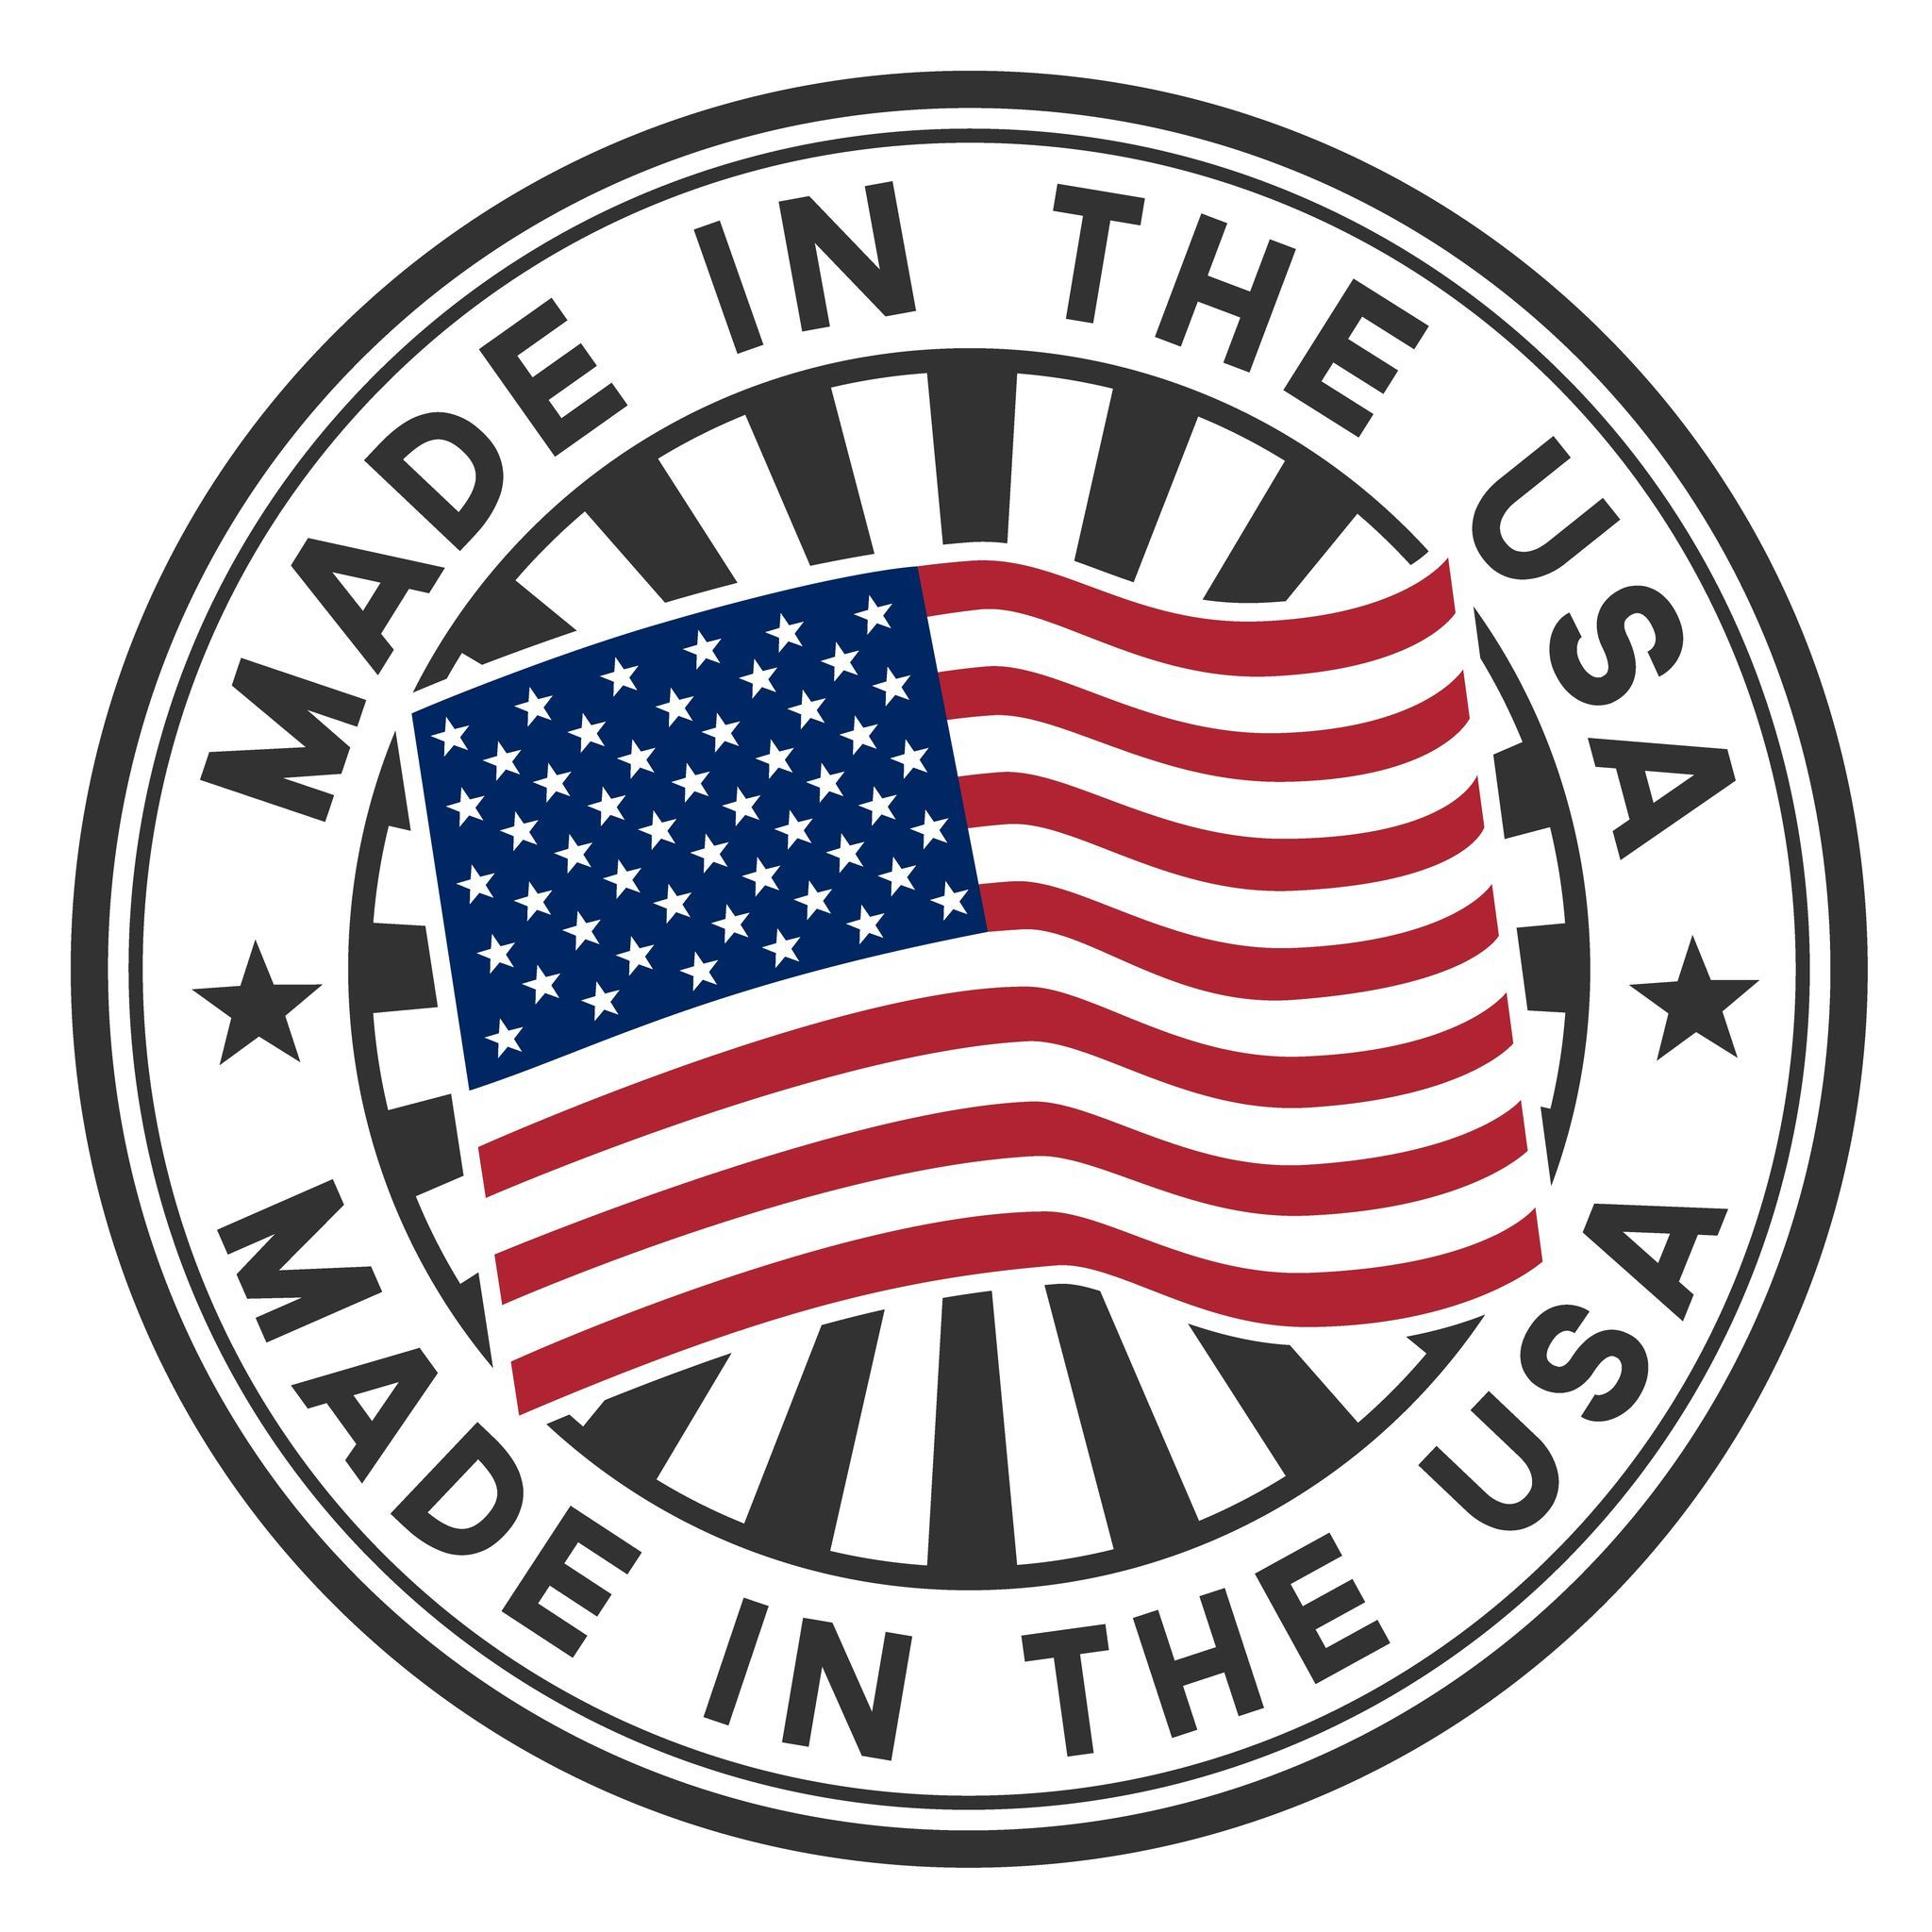 made in america ----- made in america - toby keith ----- t ----- made in america - toby keith.